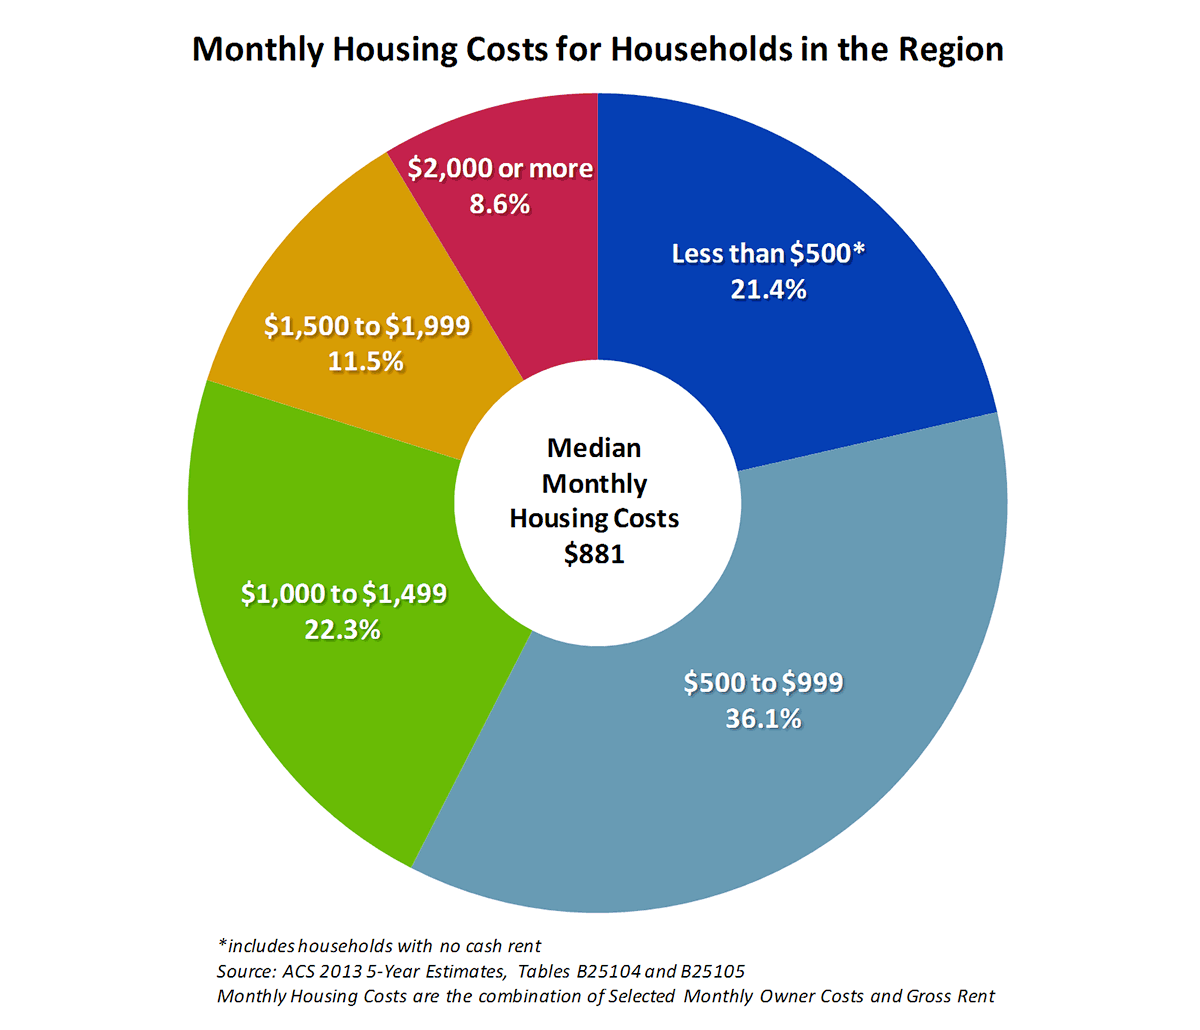 Monthly Housing Costs for Households in the Region